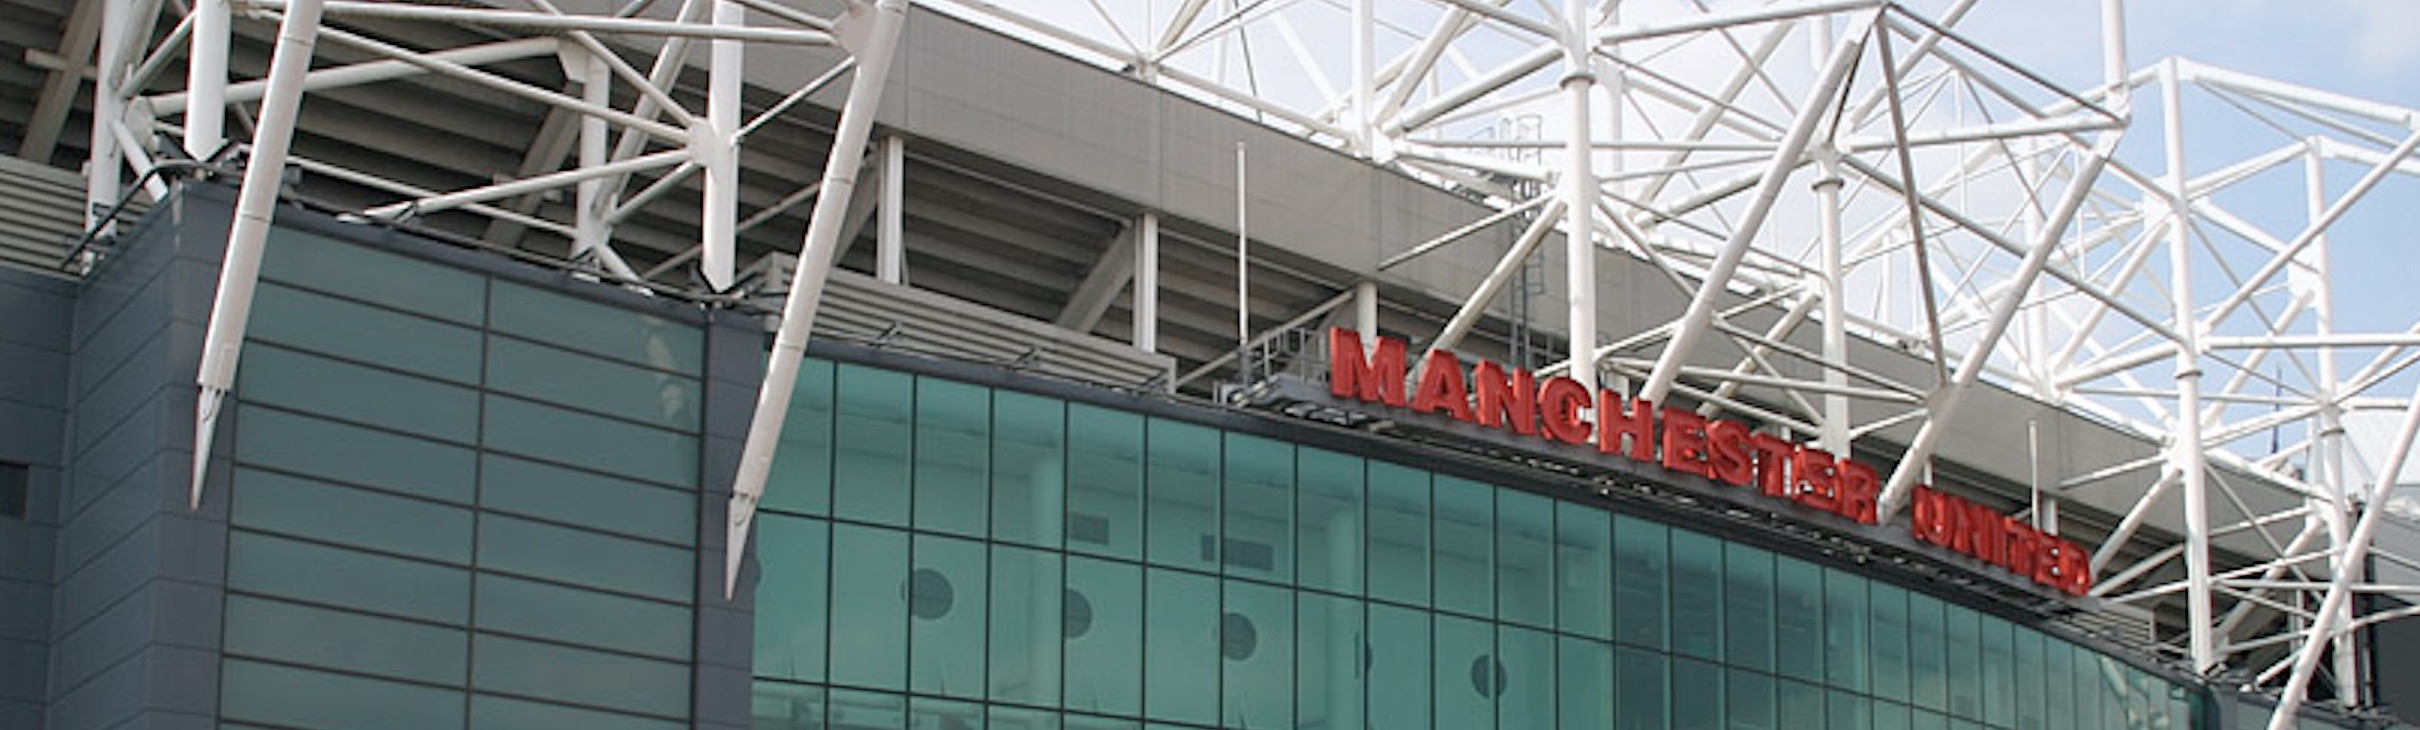 Man United V Watford - Daytrip by Coach & Ferry